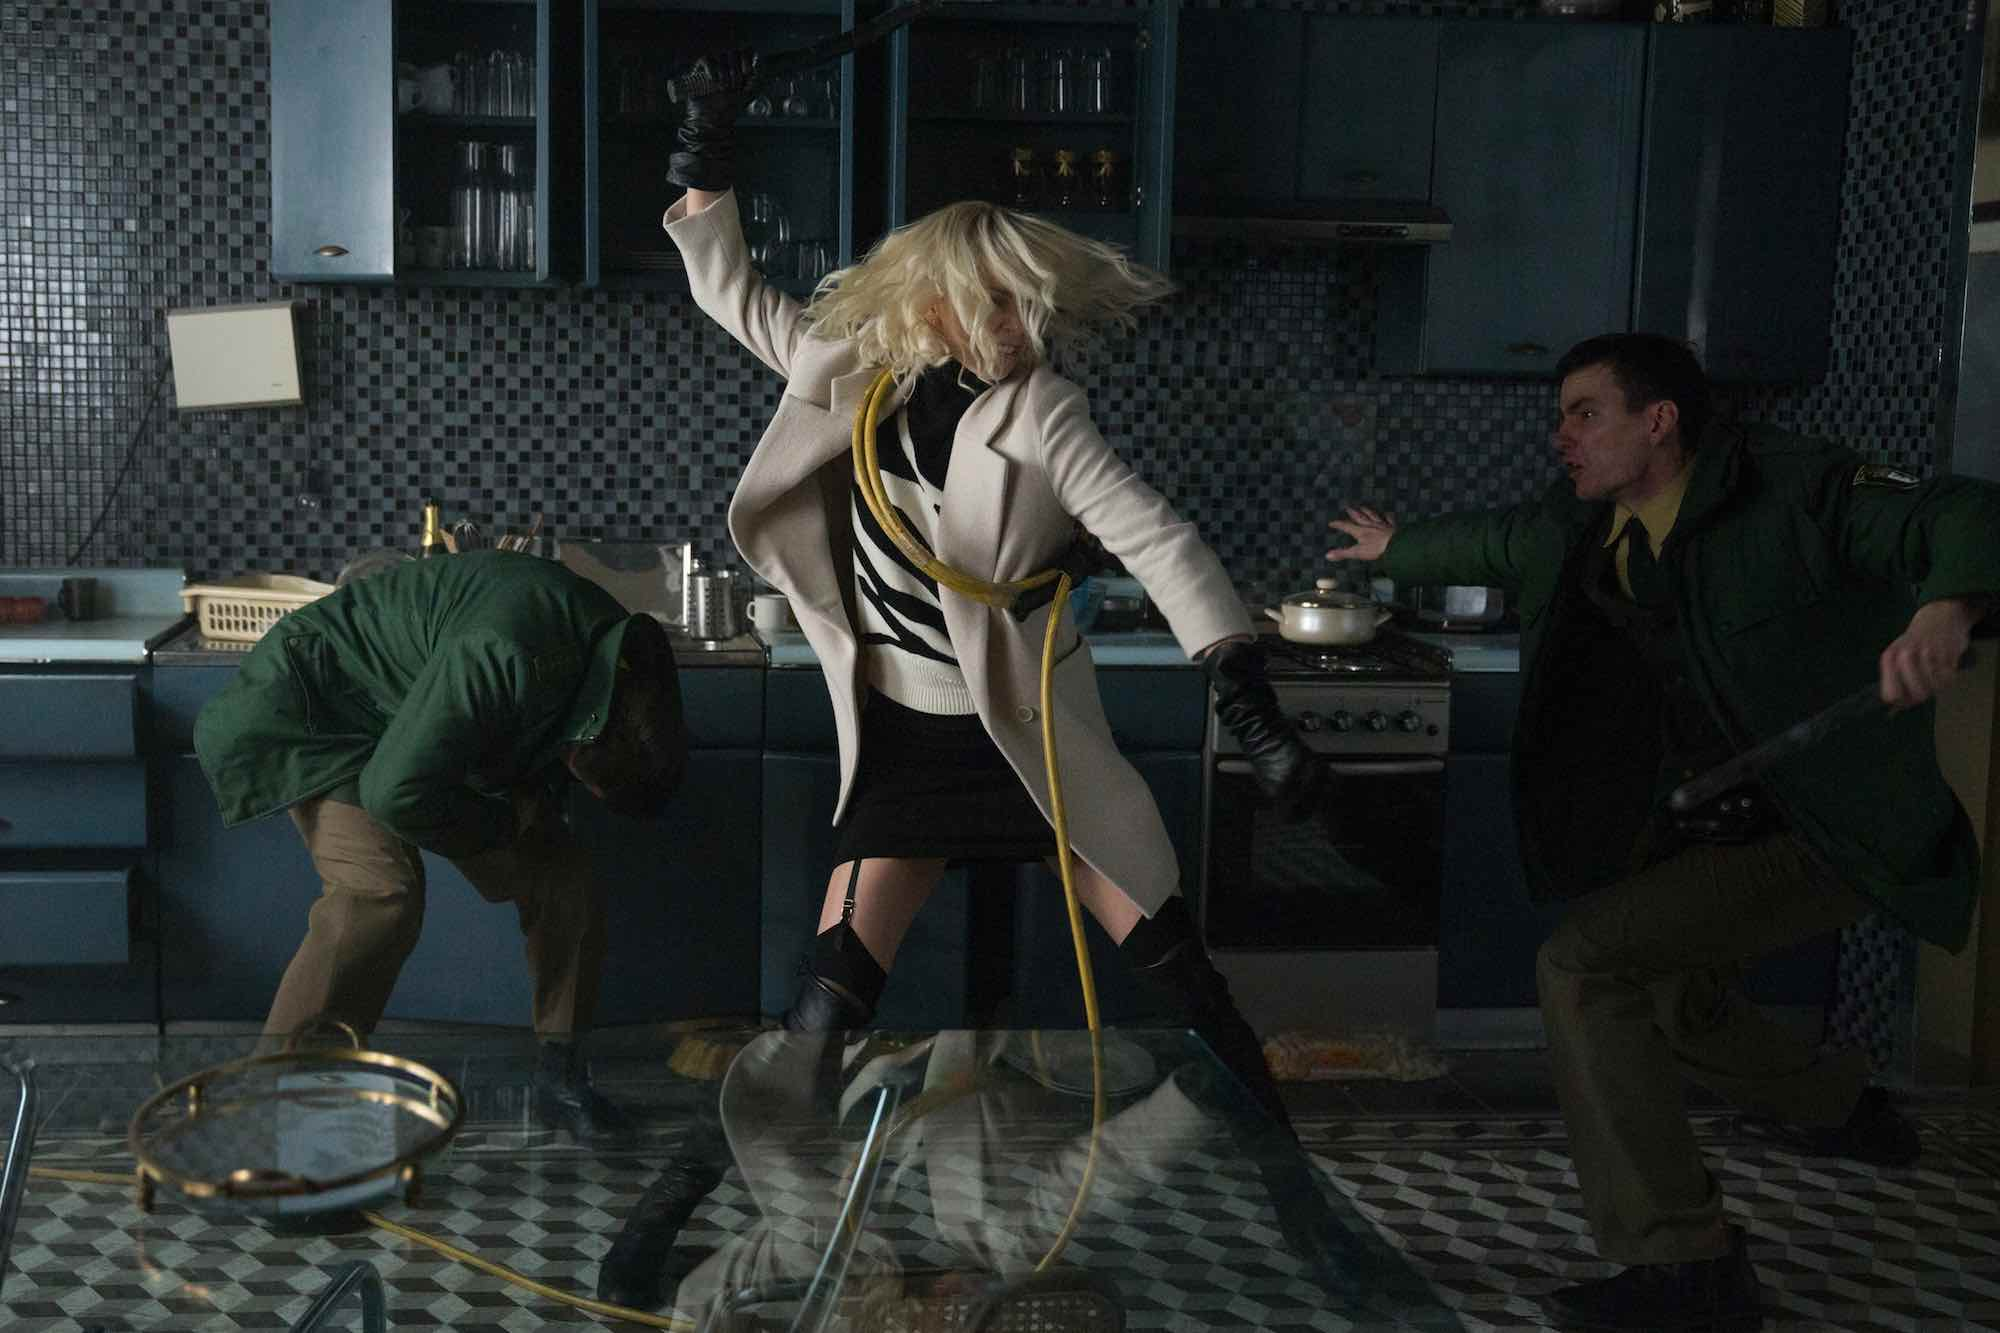 Atomic Blonde NSFW trailer: Charlize Theron has 'an impressive set of skills'